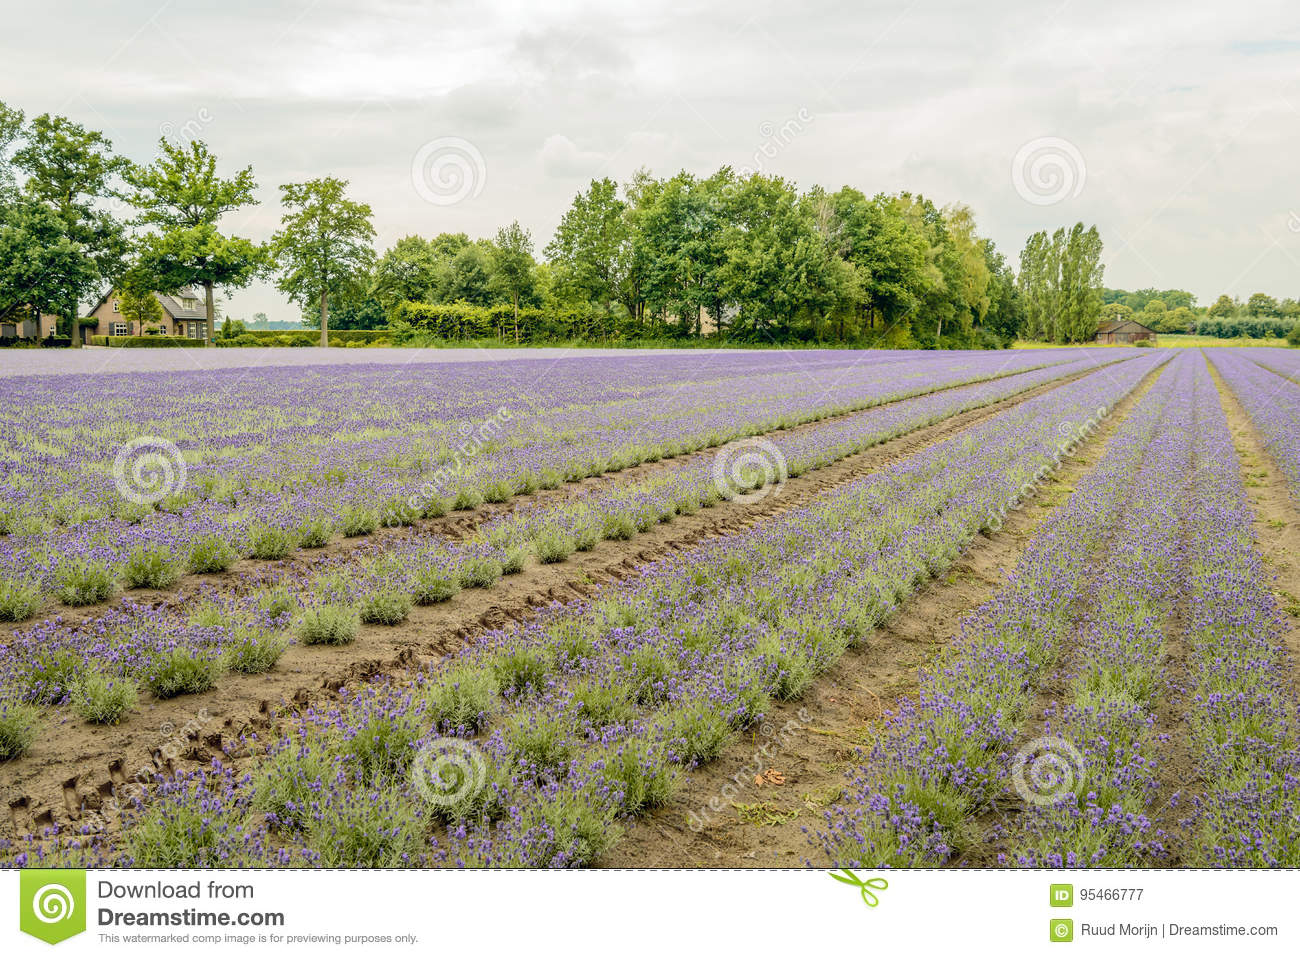 Converging Beds With Purple Flowering Lavender Plants In The Fie